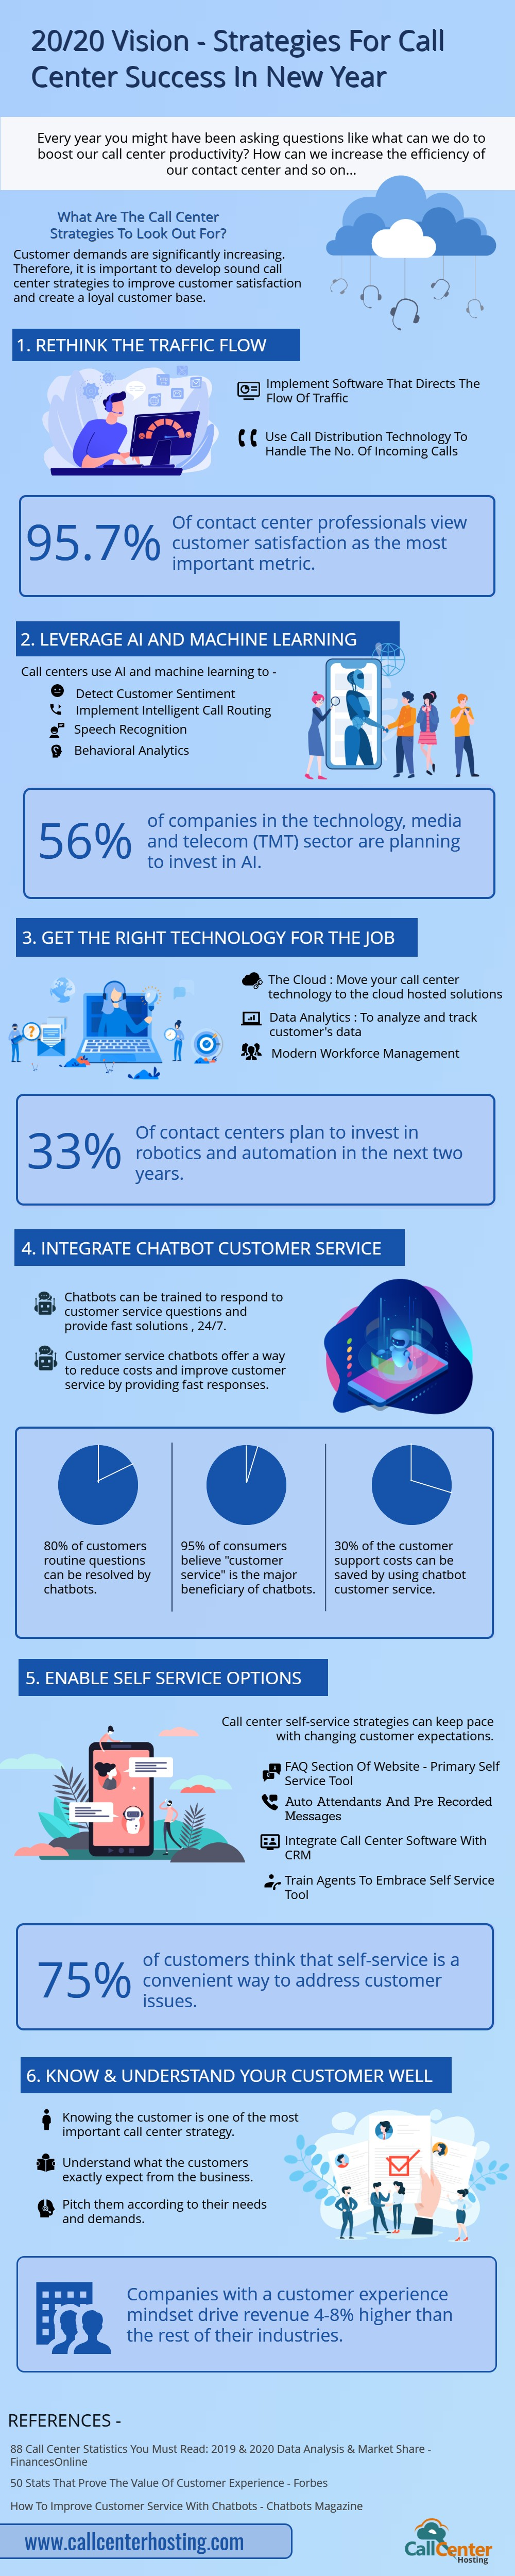 Strategies For Call Center Success in 2020